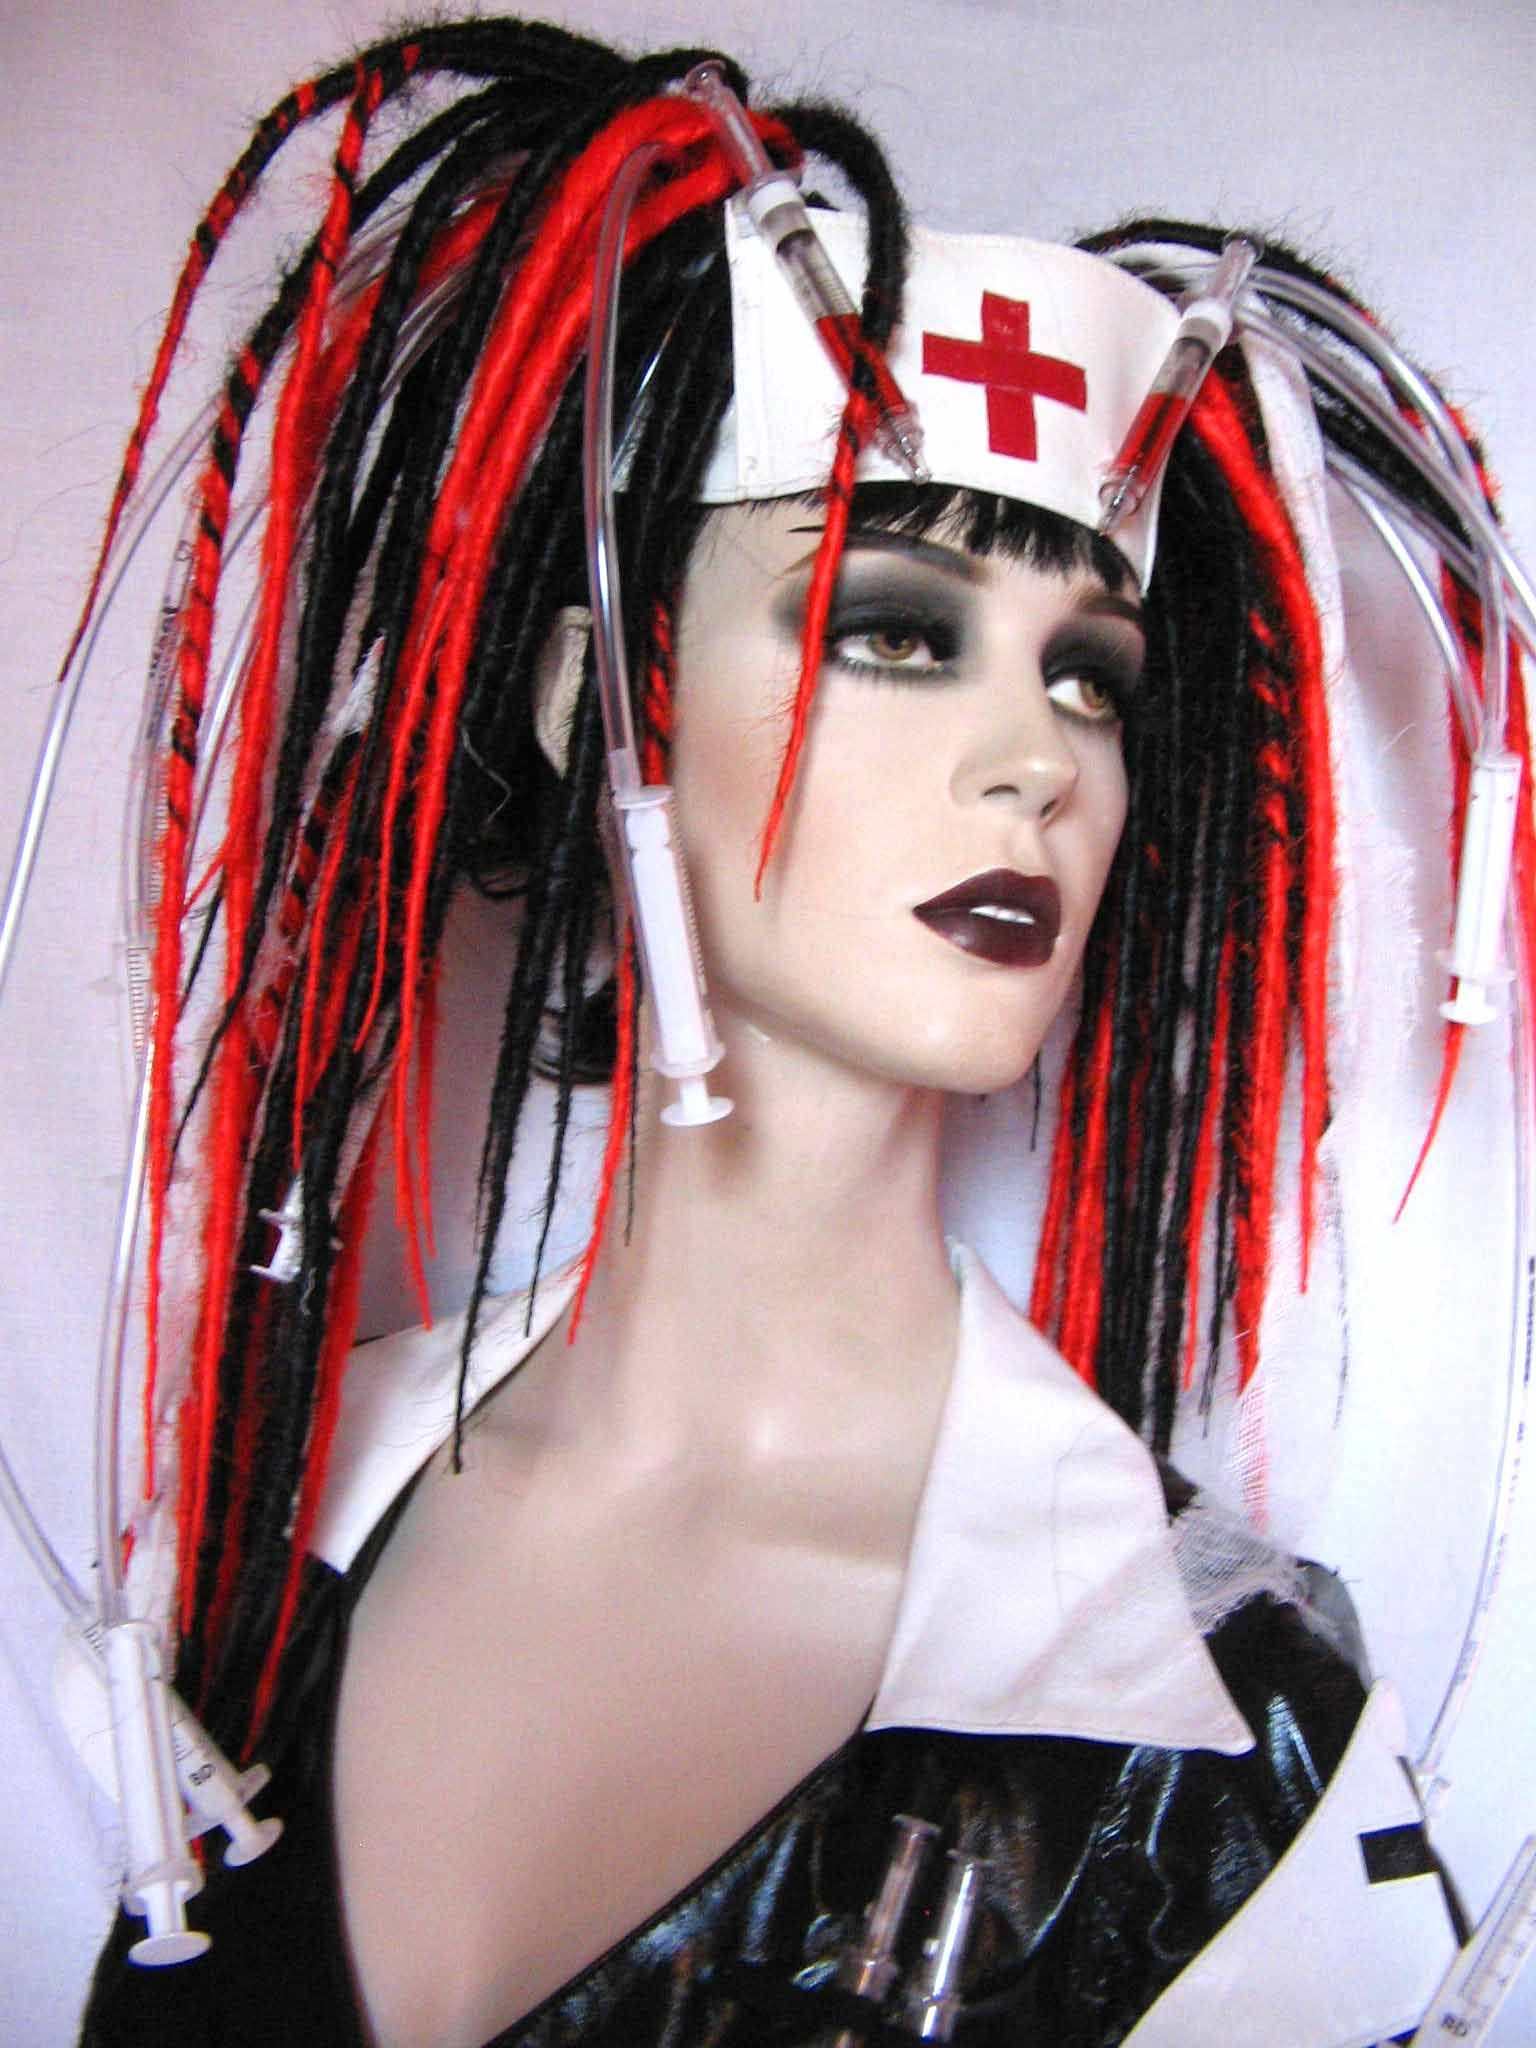 I want hair like this. Syringes and gauze and all